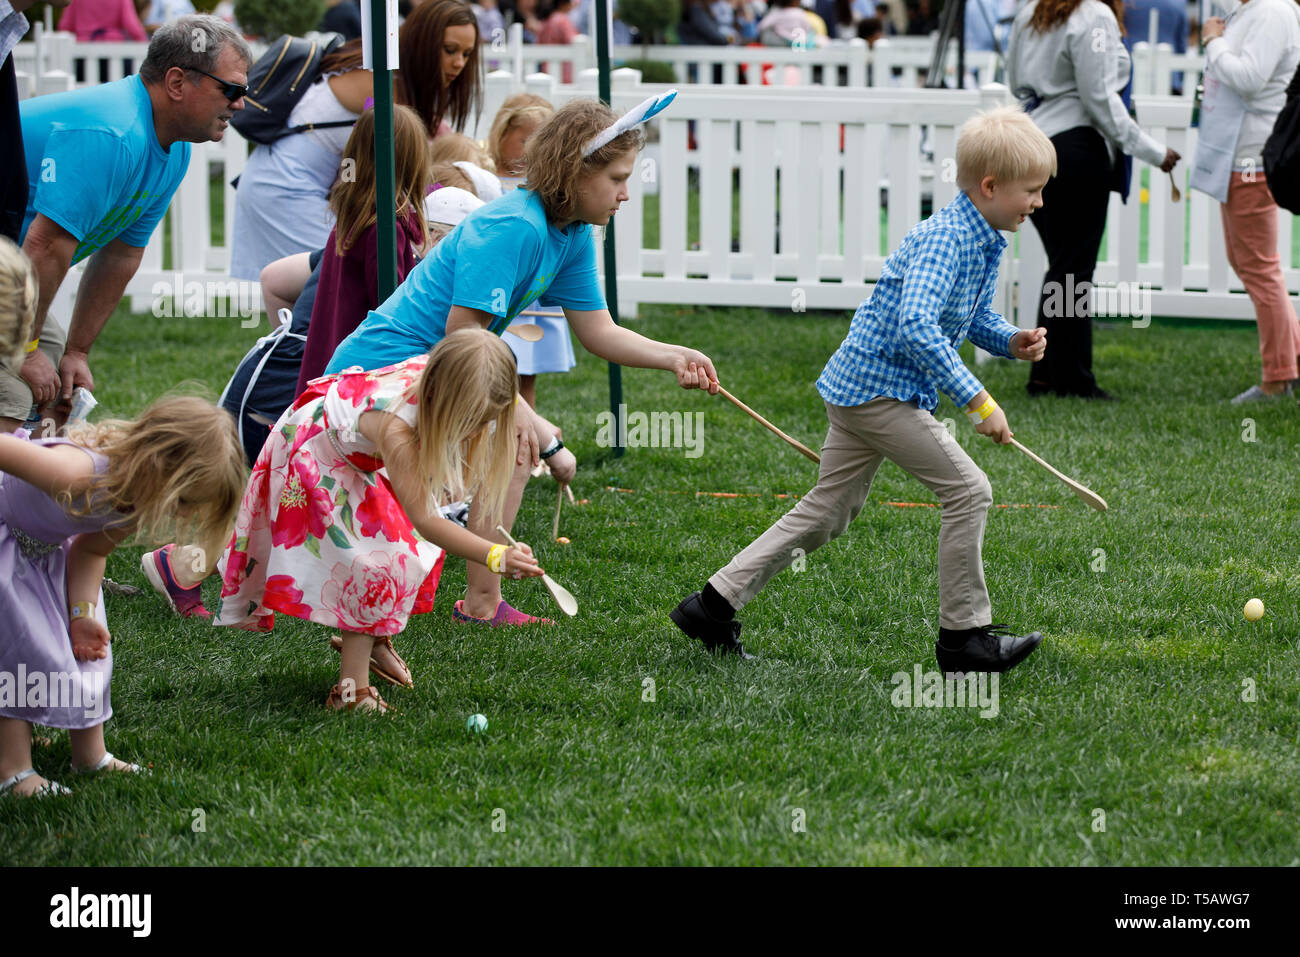 Washington, USA. 22nd Apr, 2019. Children take part in the annual Easter Egg Roll at the White House in Washington, DC, the United States, on April 22, 2019. White House Easter Egg Roll was held on the South Lawn on Monday as the annual tradition entered its 141st year. Credit: Ting Shen/Xinhua/Alamy Live News Stock Photo